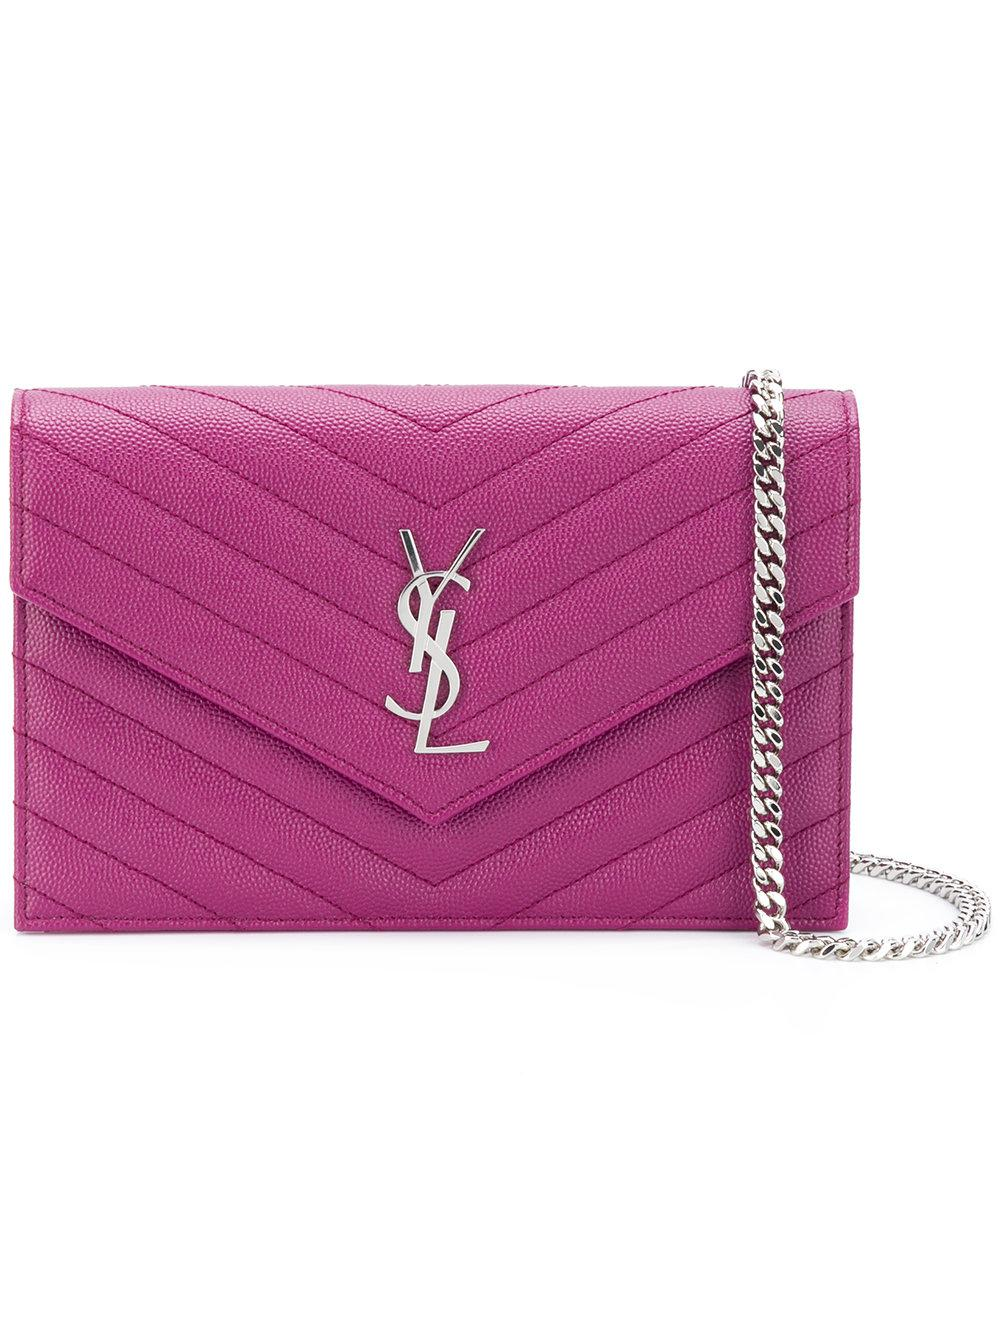 Saint Laurent Monogram Chain Wallet - Pink & Purple